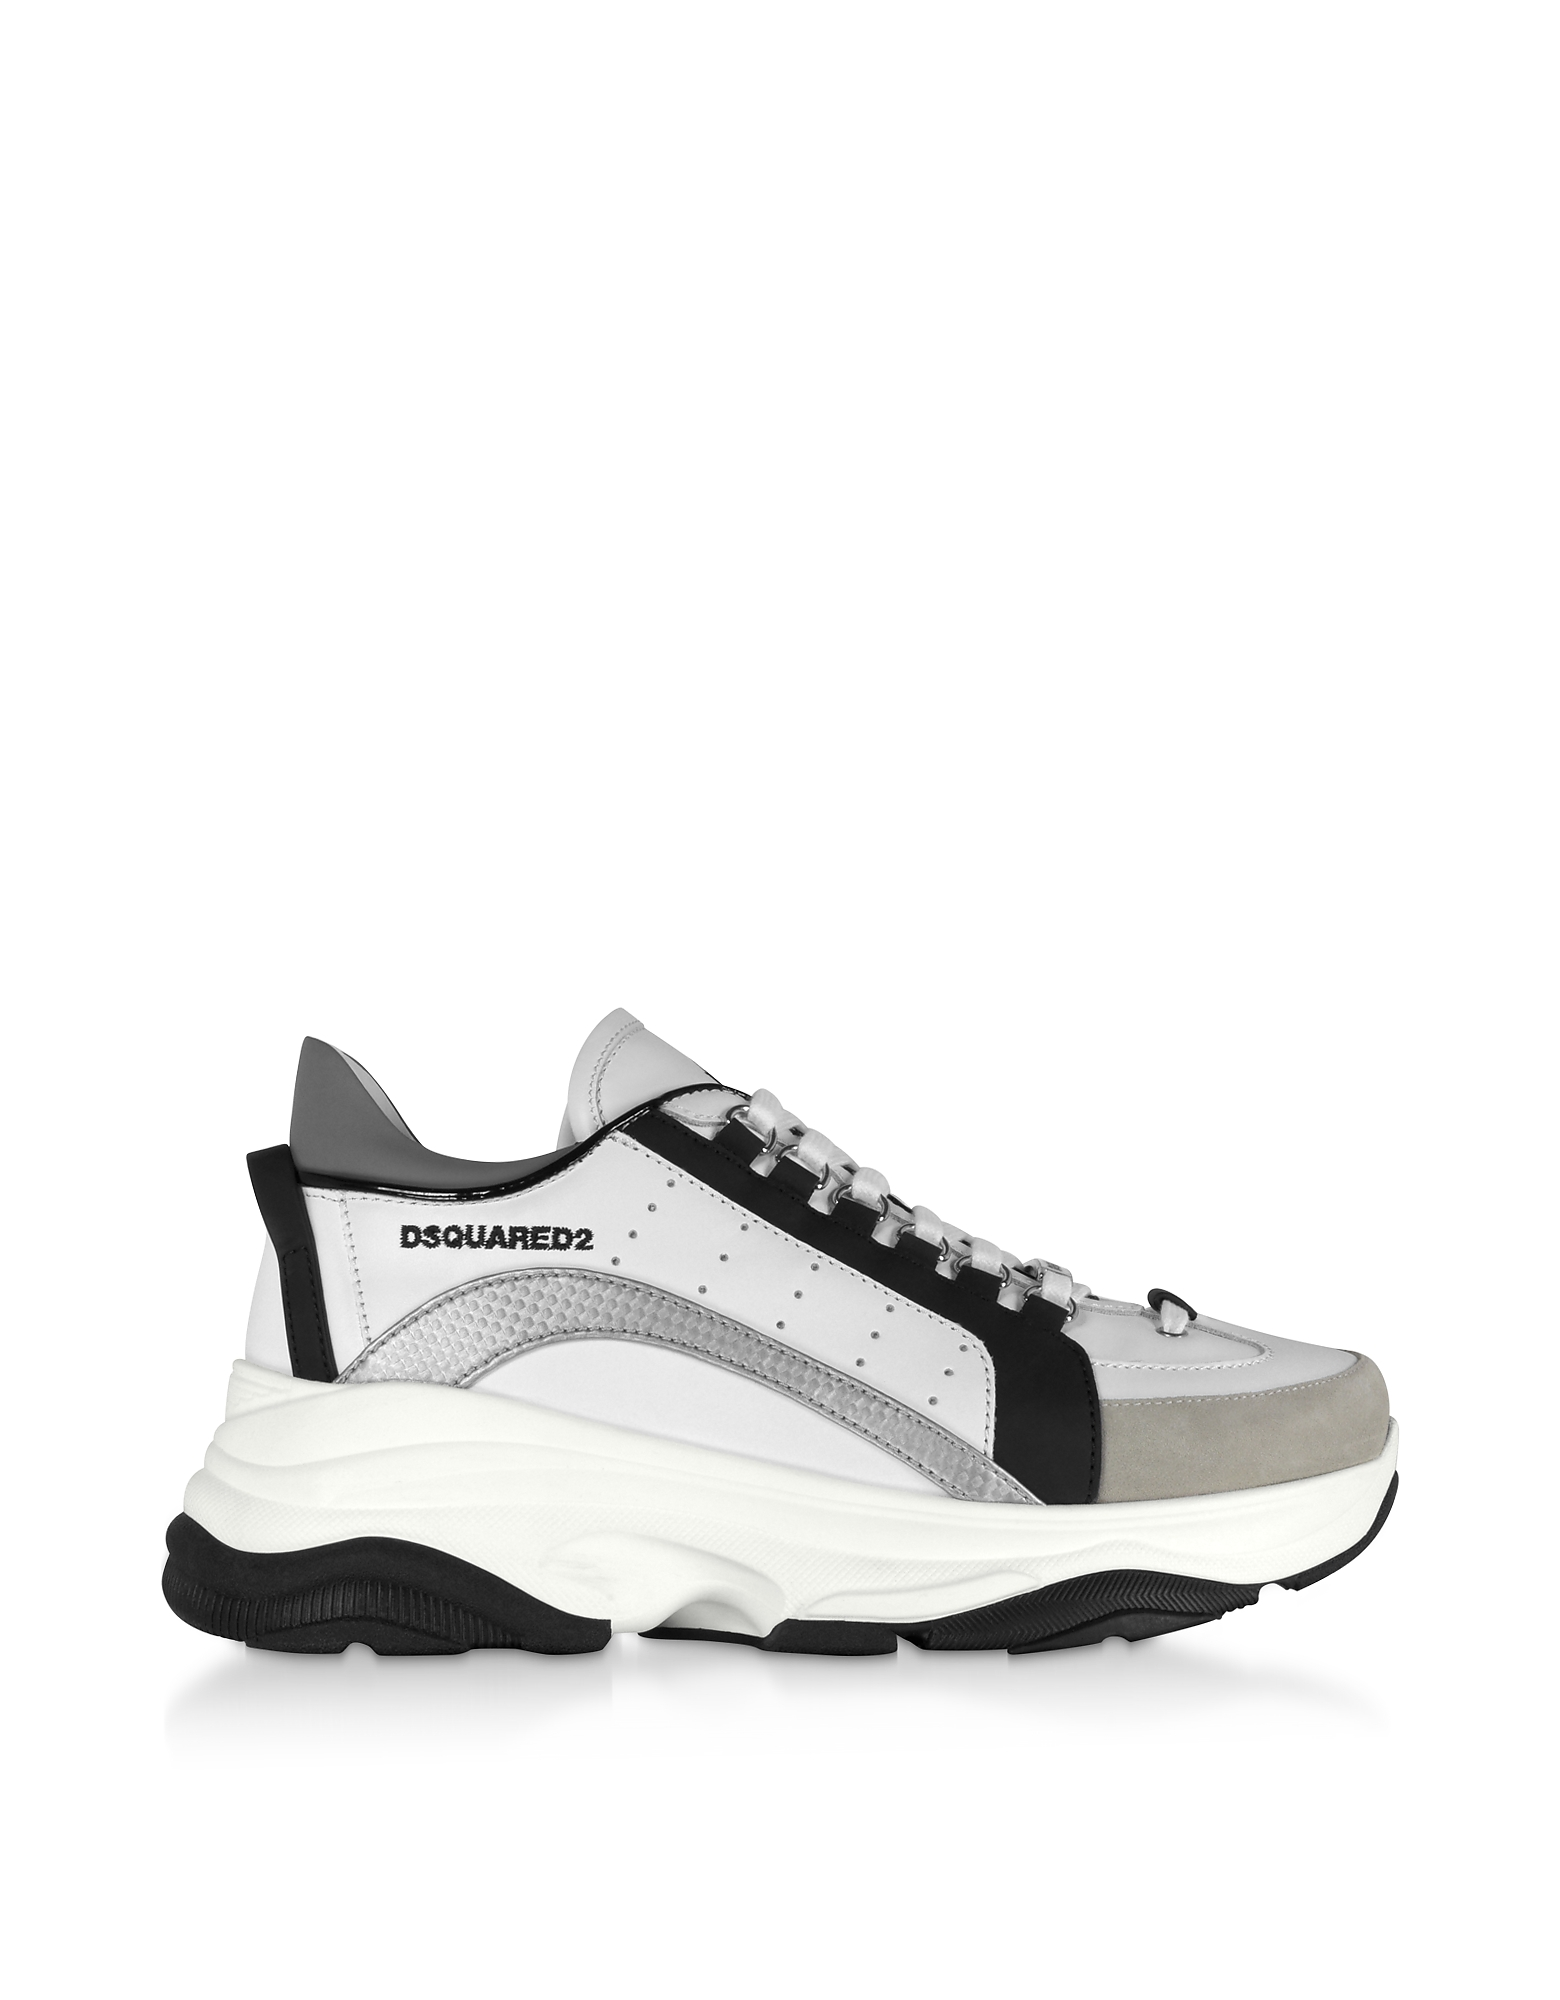 Gommato Leather Men's Sneakers